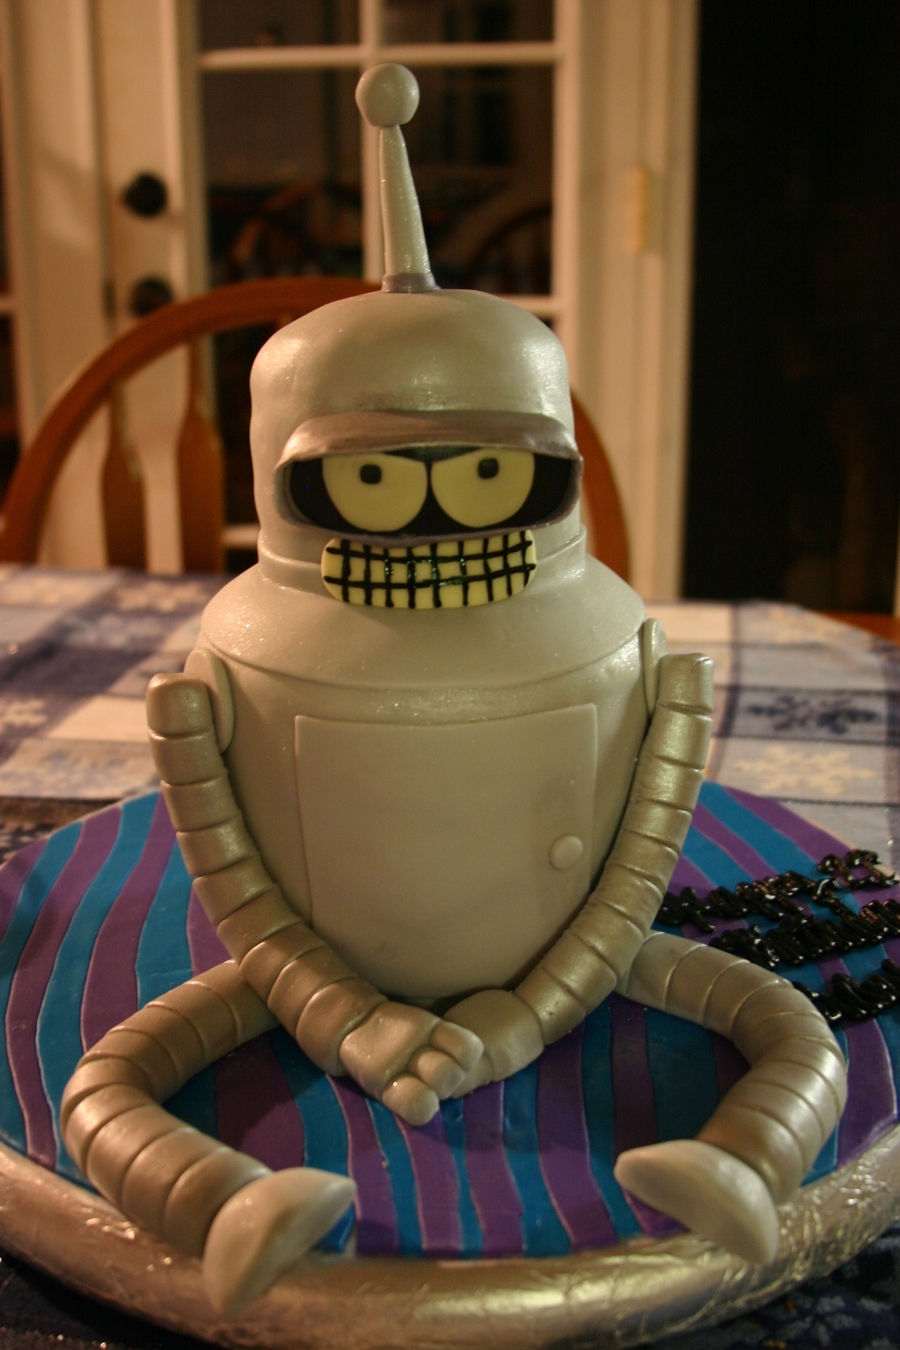 Bender The Robot on Cake Central